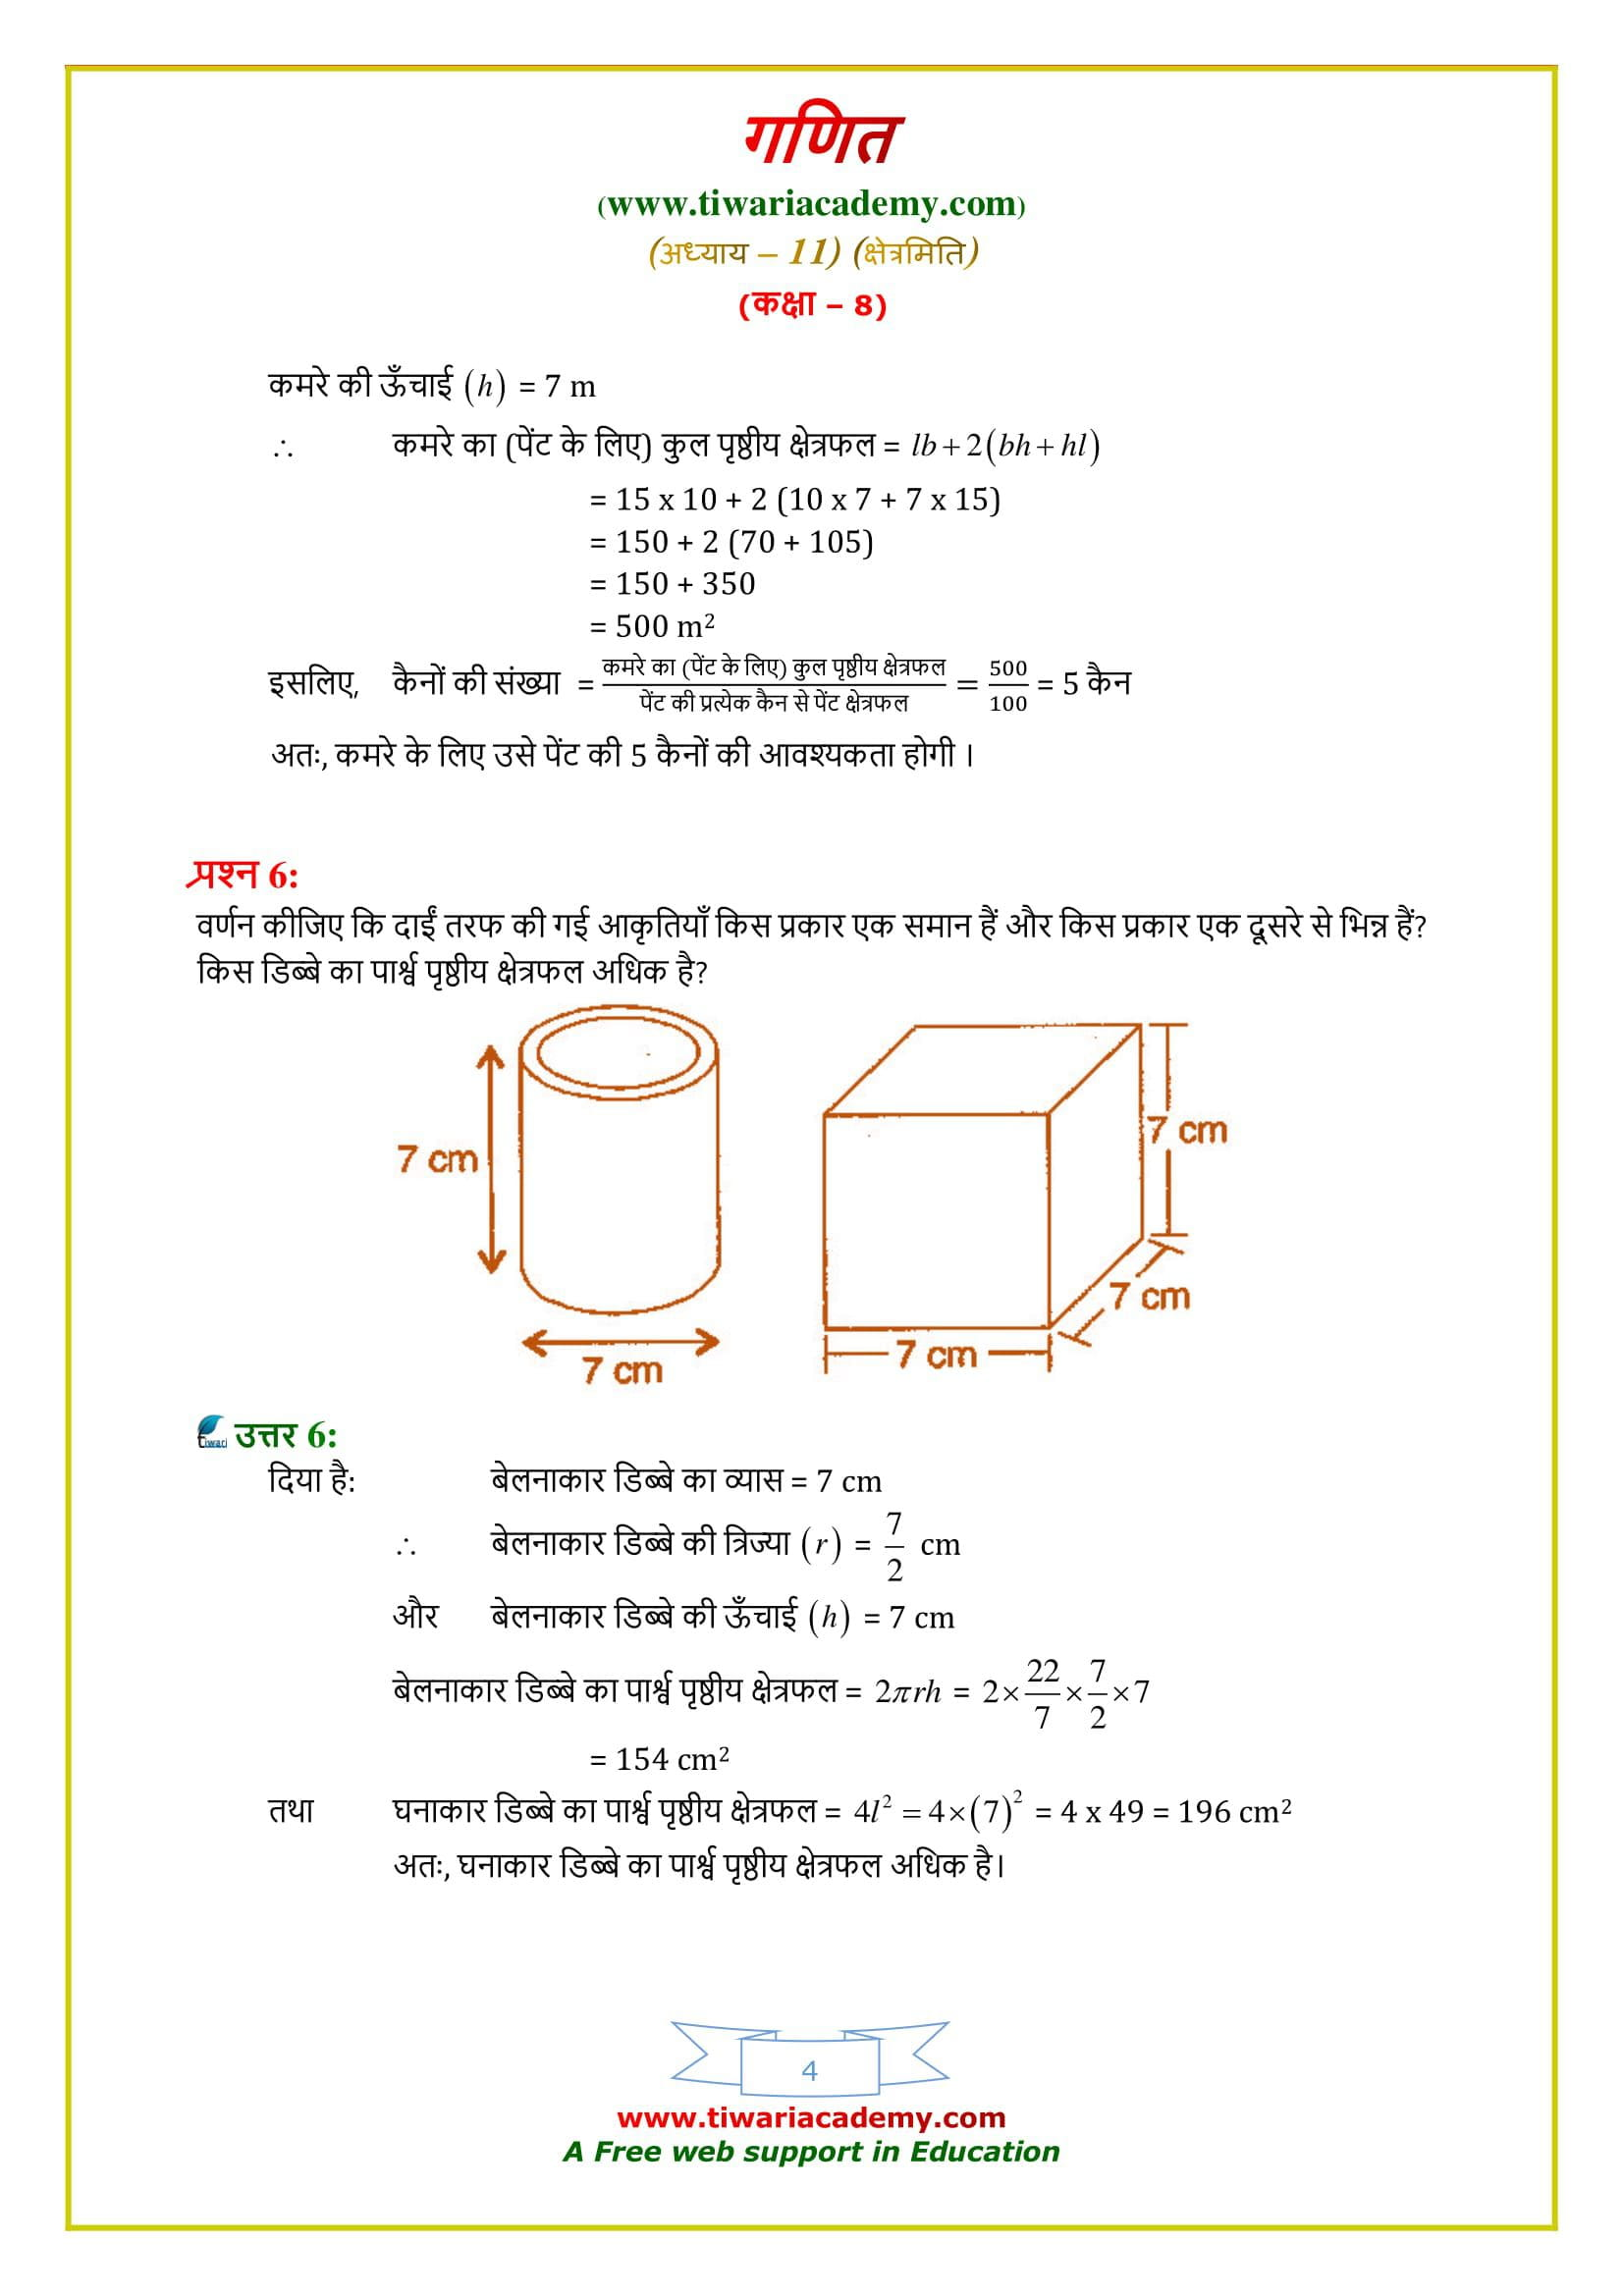 8 Maths Exercise 11.3 Solutions all question answers nd key